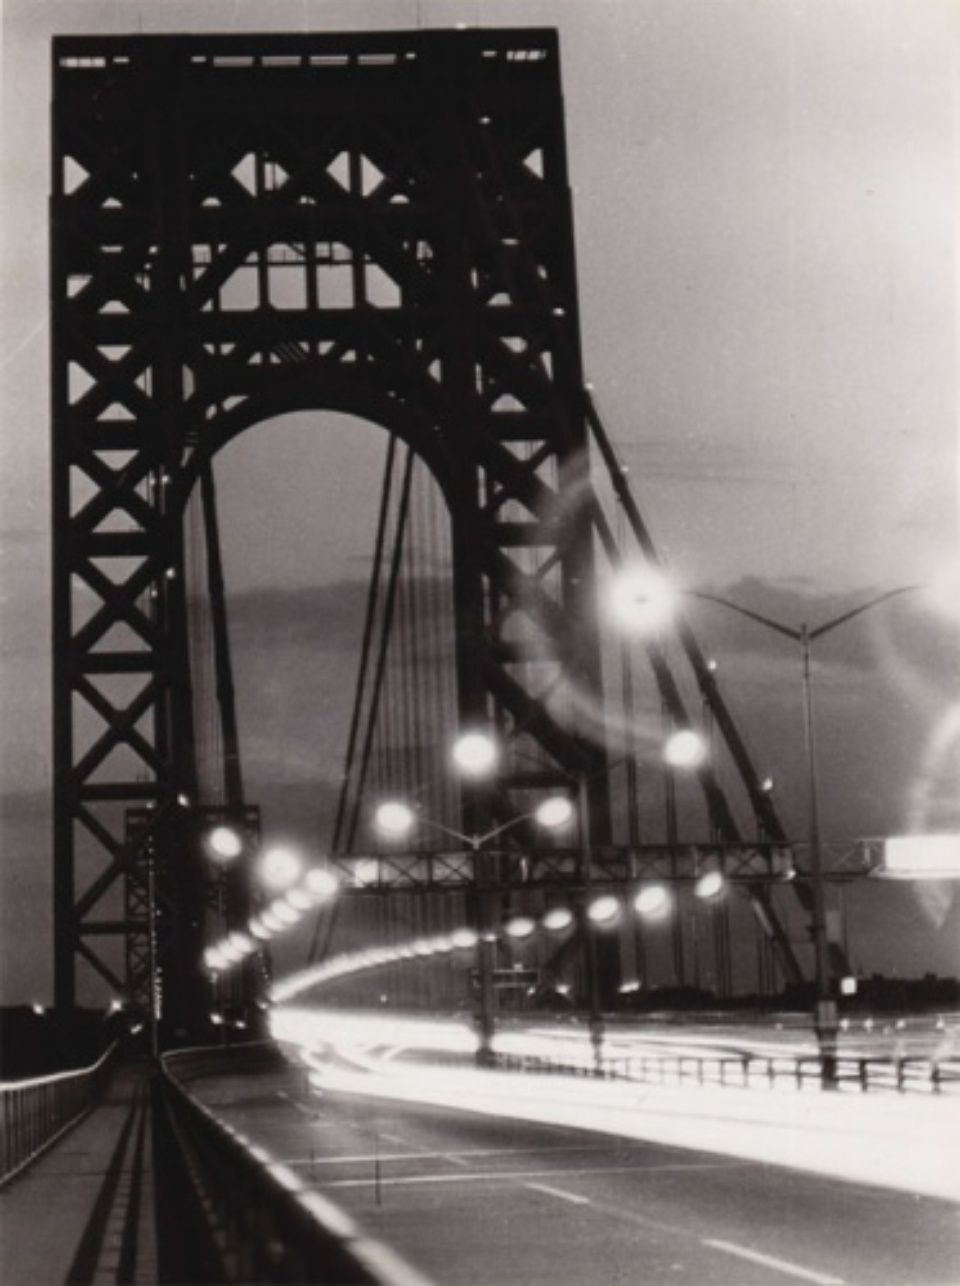 Fred Stein George Washington Bridge Time Lapse New York, 1949 Vintage gelatin silver print 18 x 24 cm